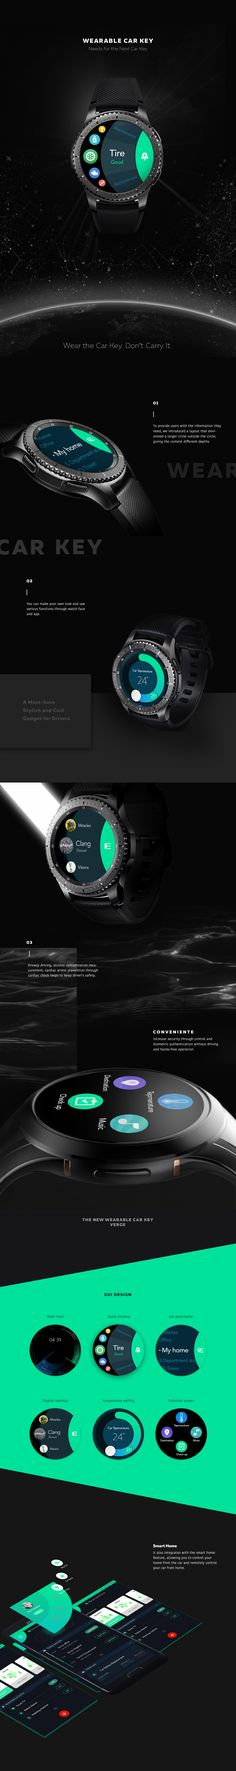 """Check out this @Behance project: """"Wearable Car Key UI Design"""" https://www.behance.net/gallery/46238343/Wearable-Car-Key-UI-Design"""